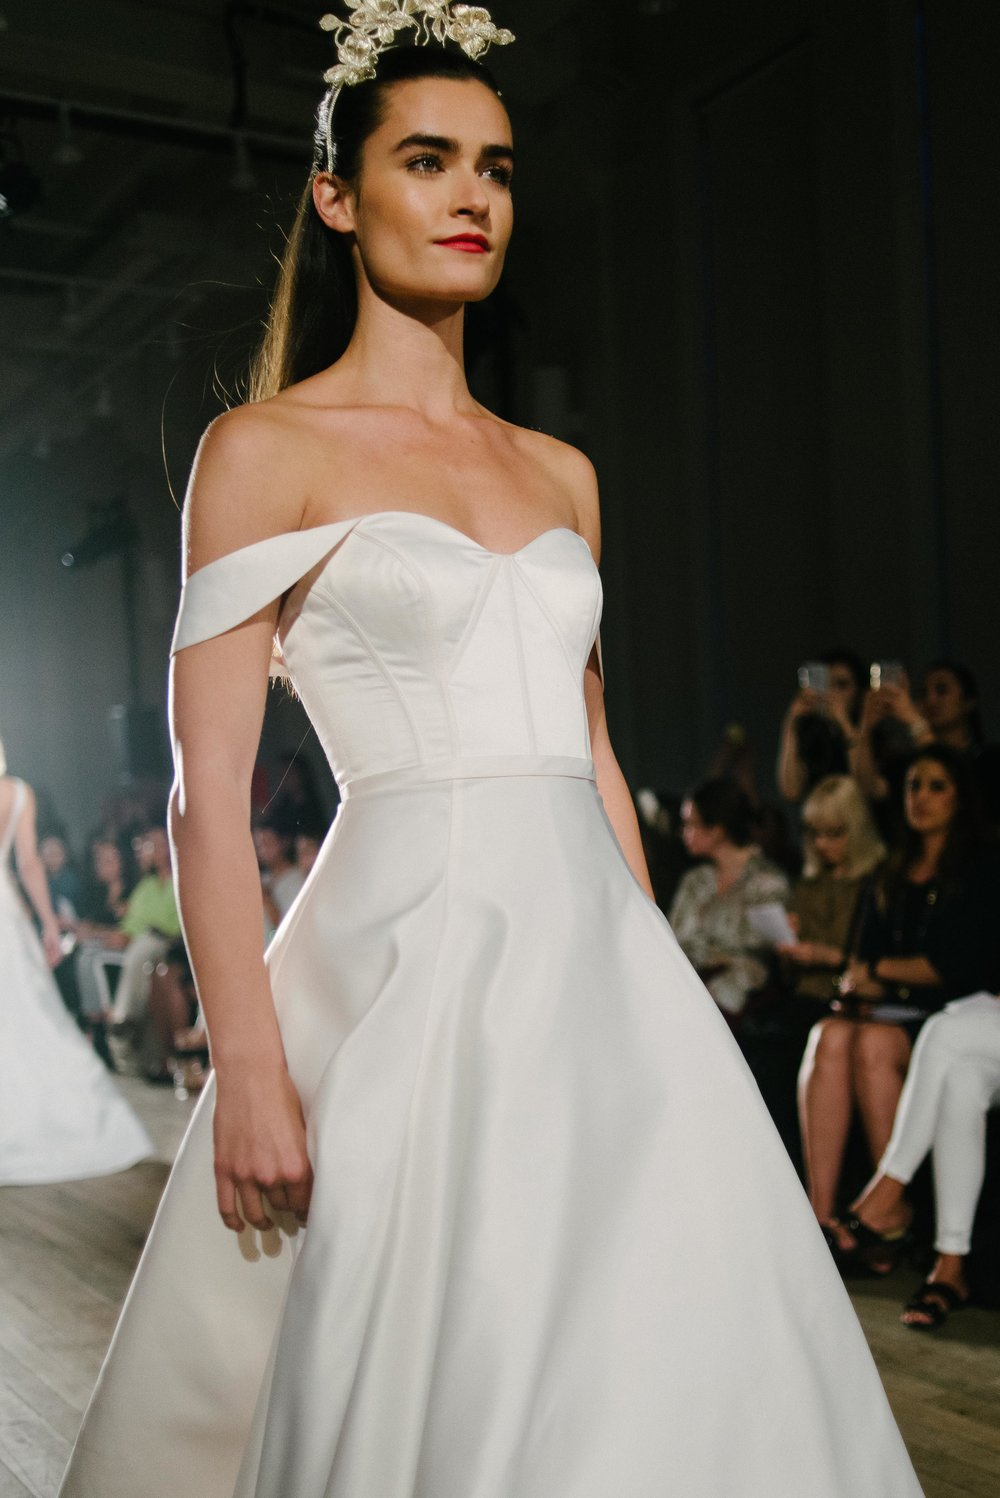 Bridal Fashion Week Trends 2019, New York Bridal Fashion Week, Bridal Market, Off The Shoulder